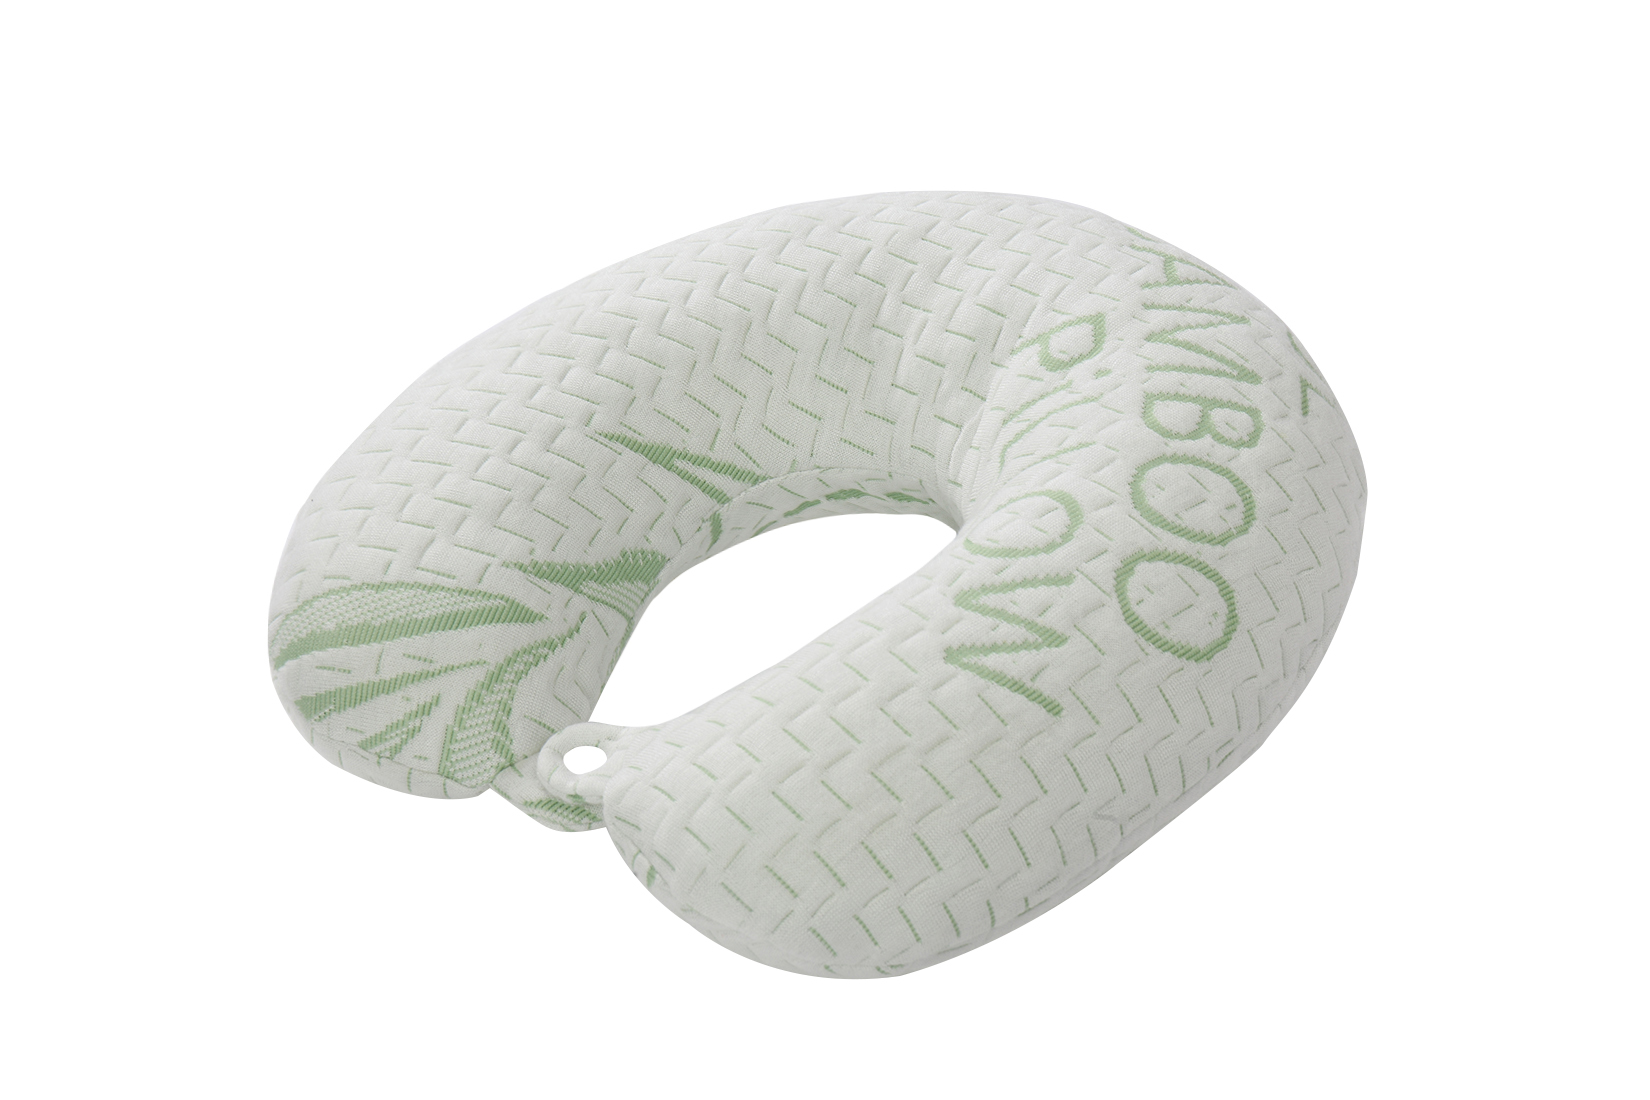 Travel Memory Foam Pillow Deal Green